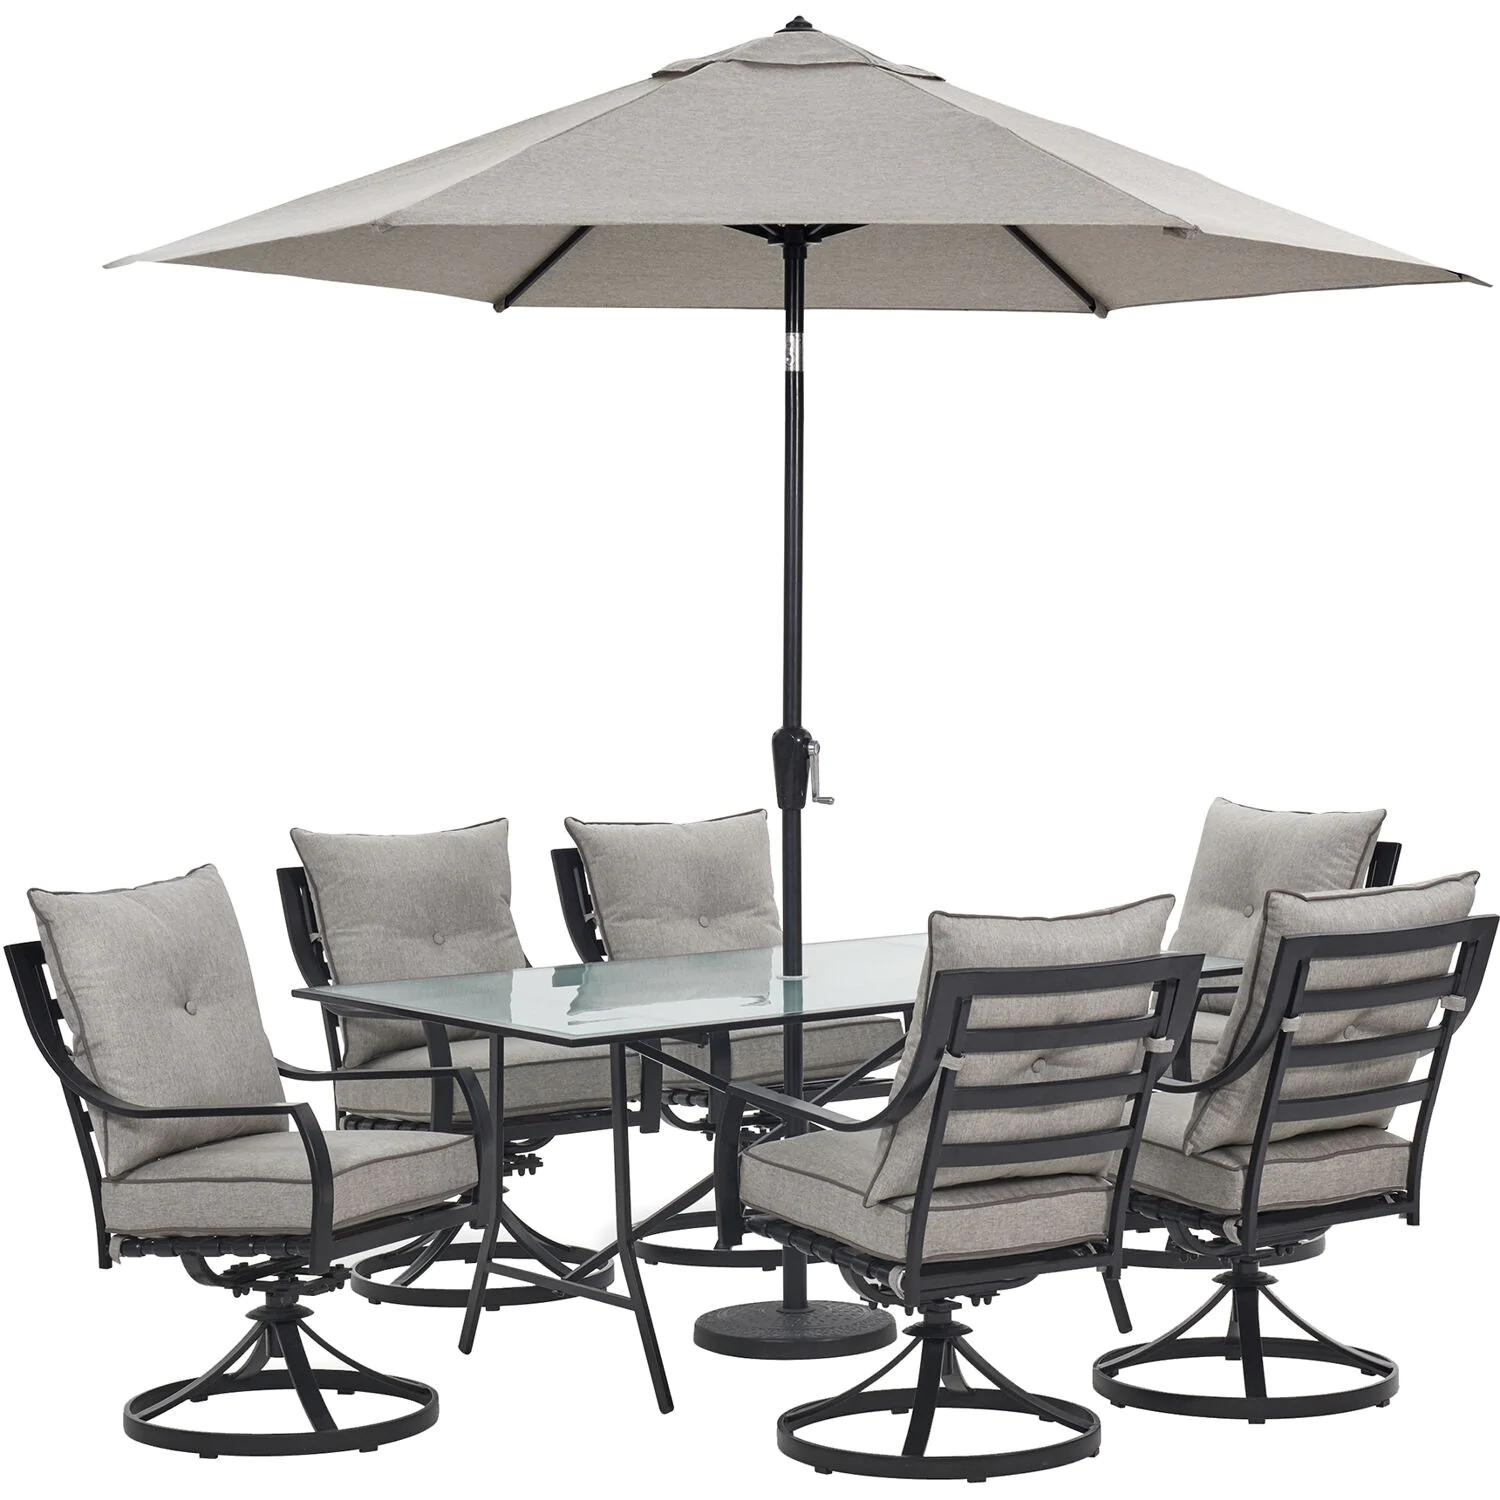 Hanover Lavallette 7-Piece Dining Set in Silver Linings with 6 Swivel Rockers, 66